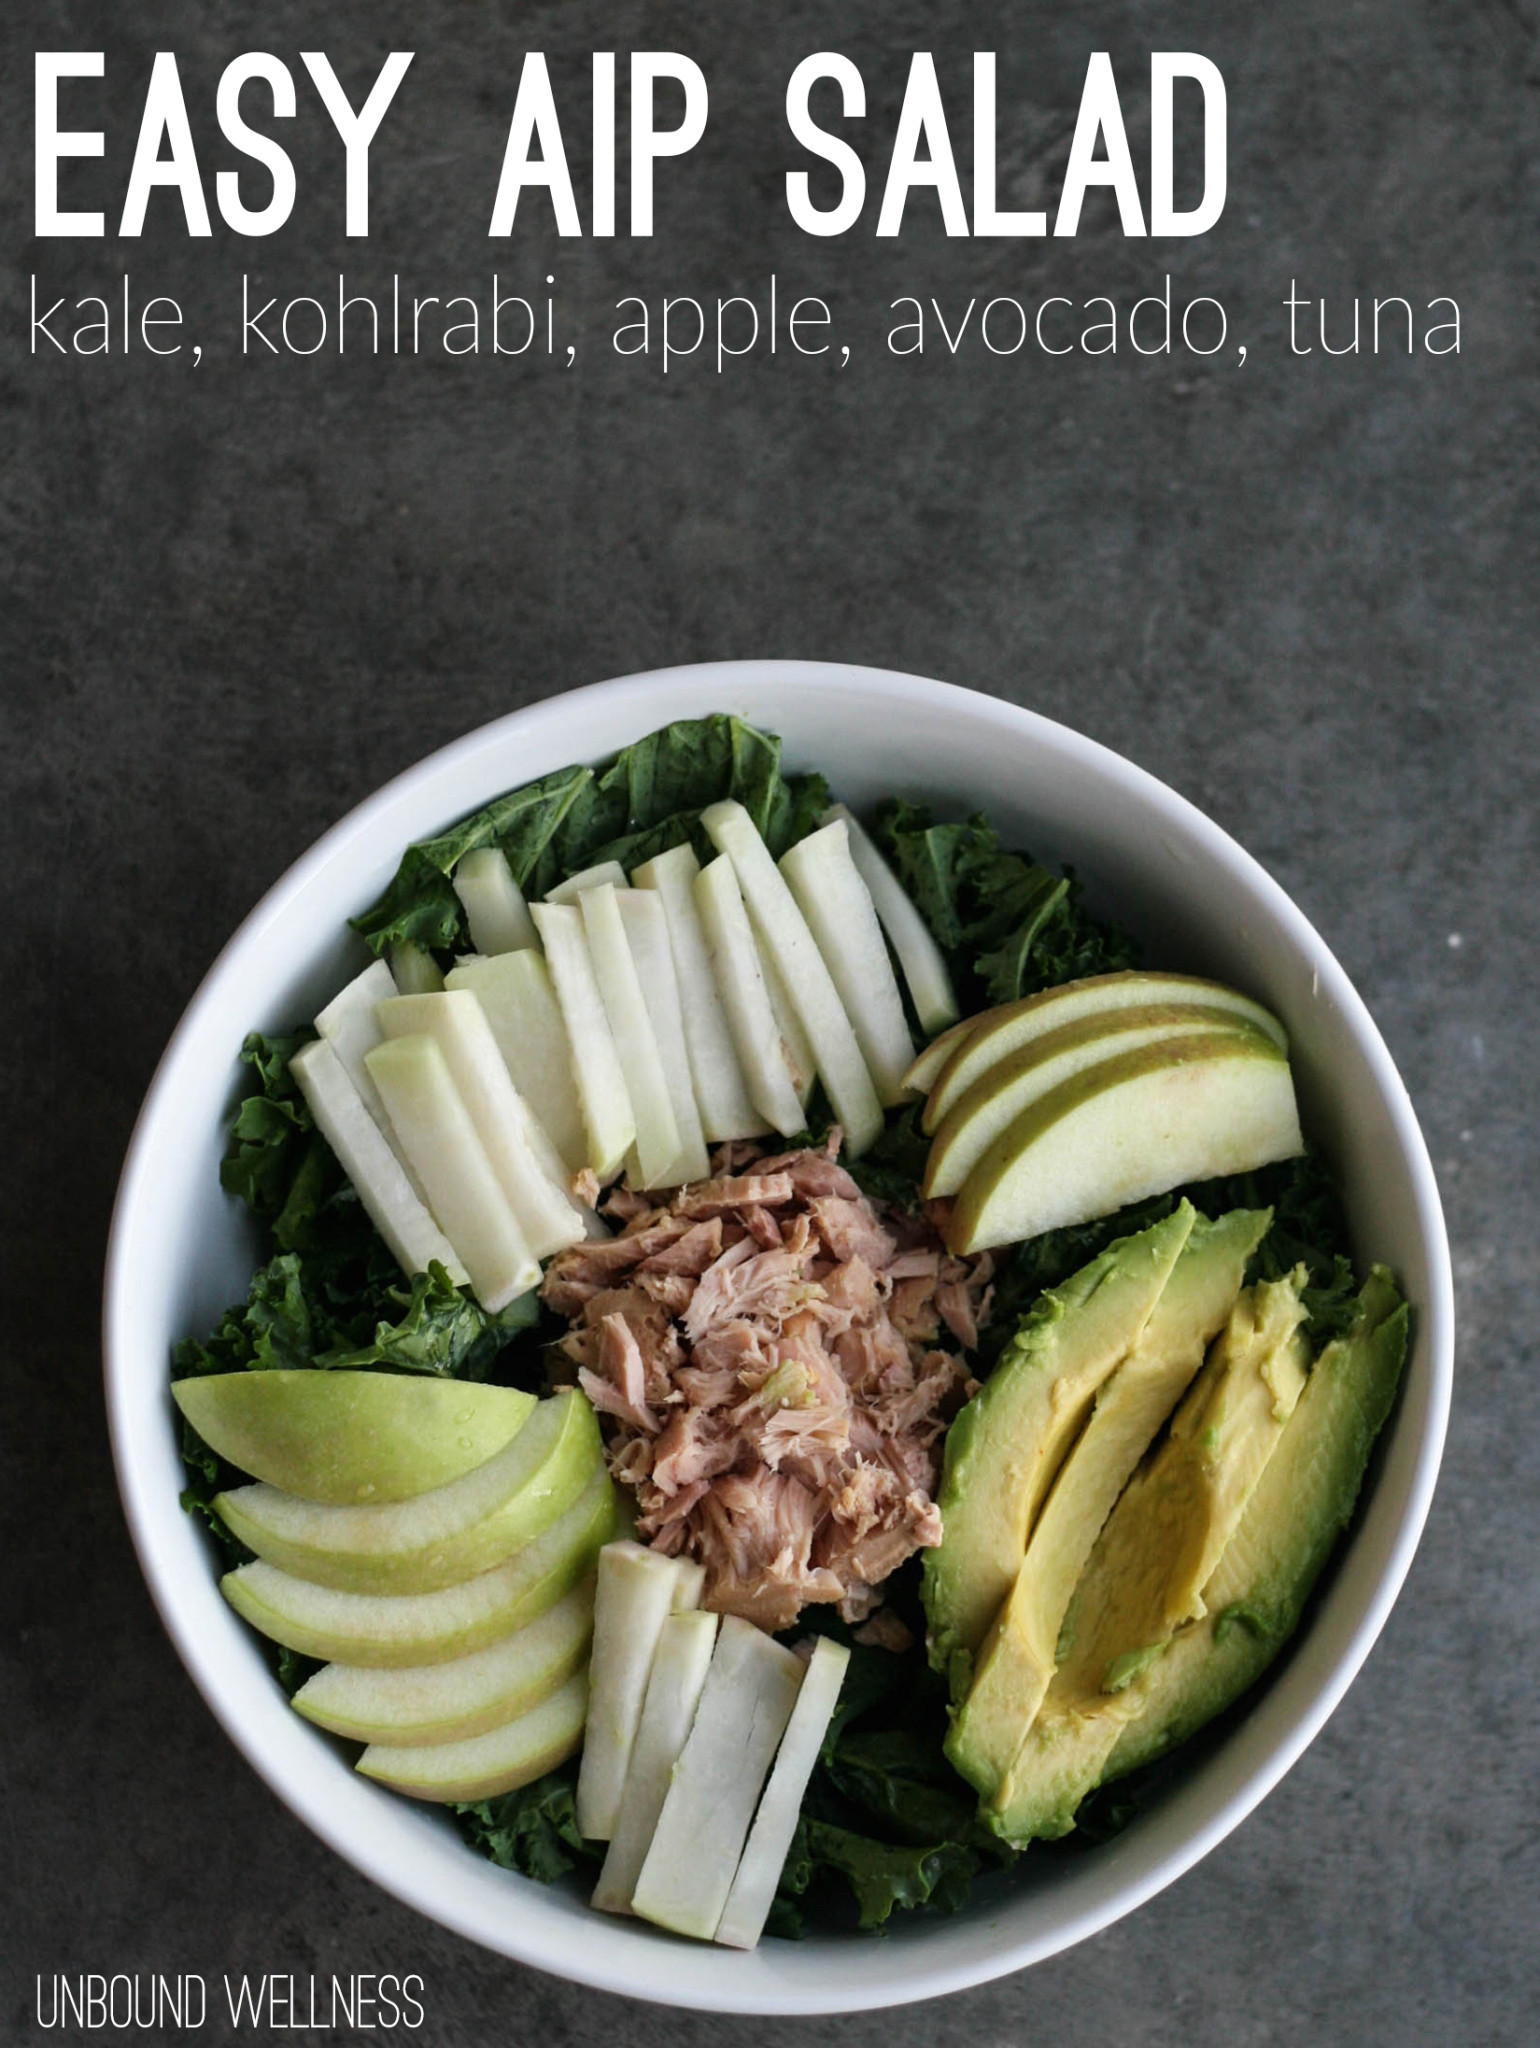 Easy Autoimmune Paleo Salad | Kale, Kohlrabi, Avocado, Apple and Tuna